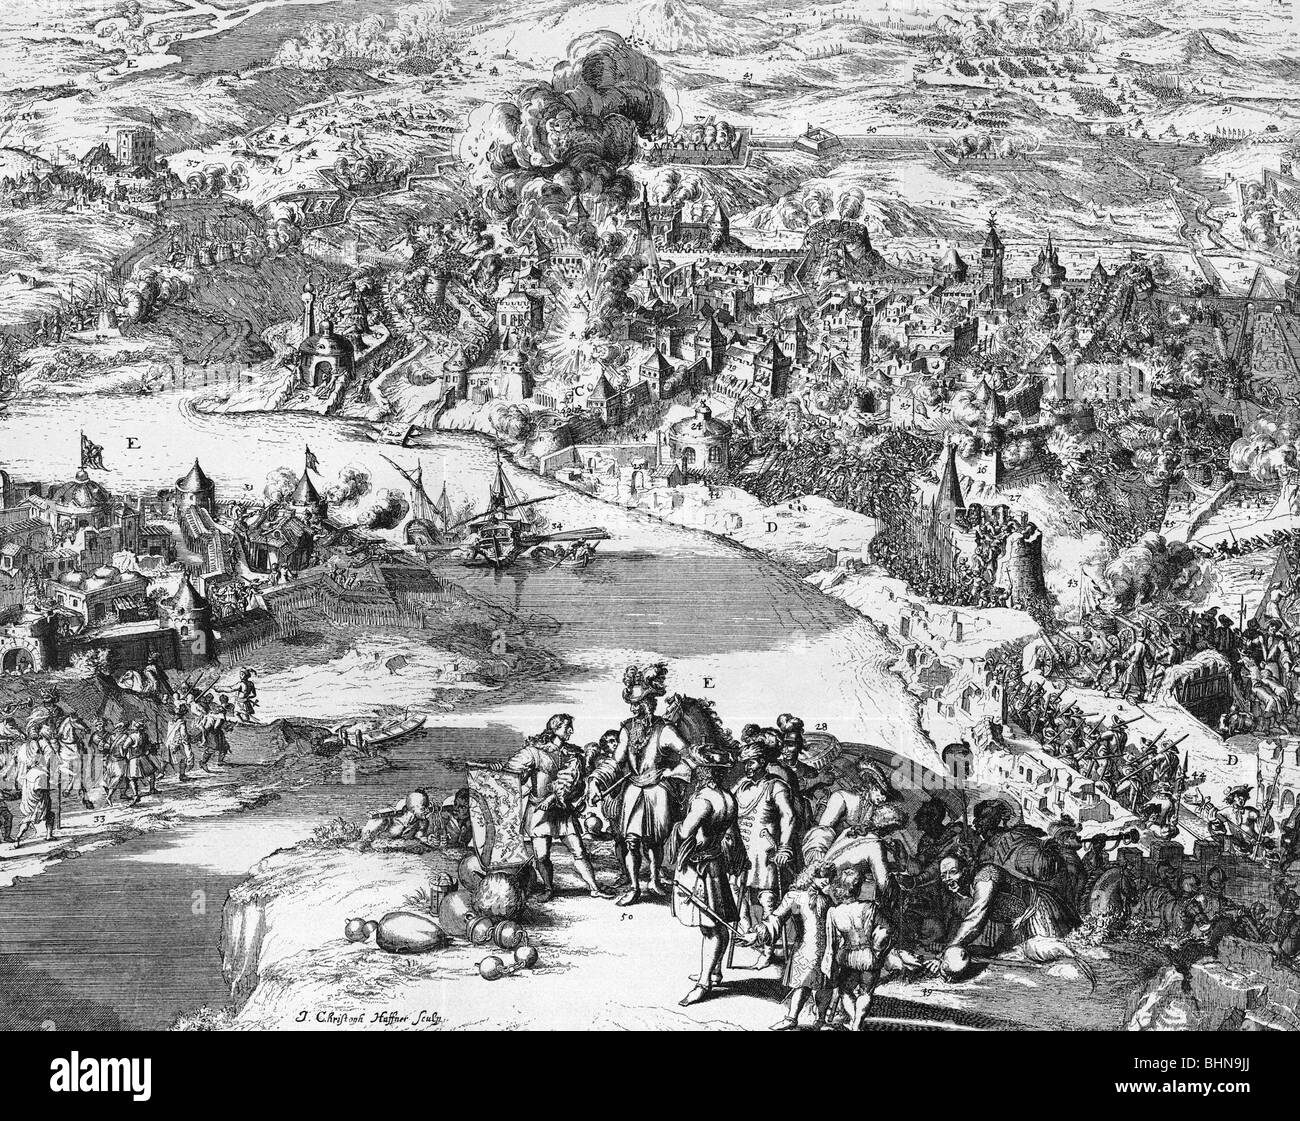 events, Great Turkish War 1683 - 1699, Siege of Ofen (Buda) 1684 - 1686,  contemporary copper engraving by J. Christian Haffner, imperial troops  under ...